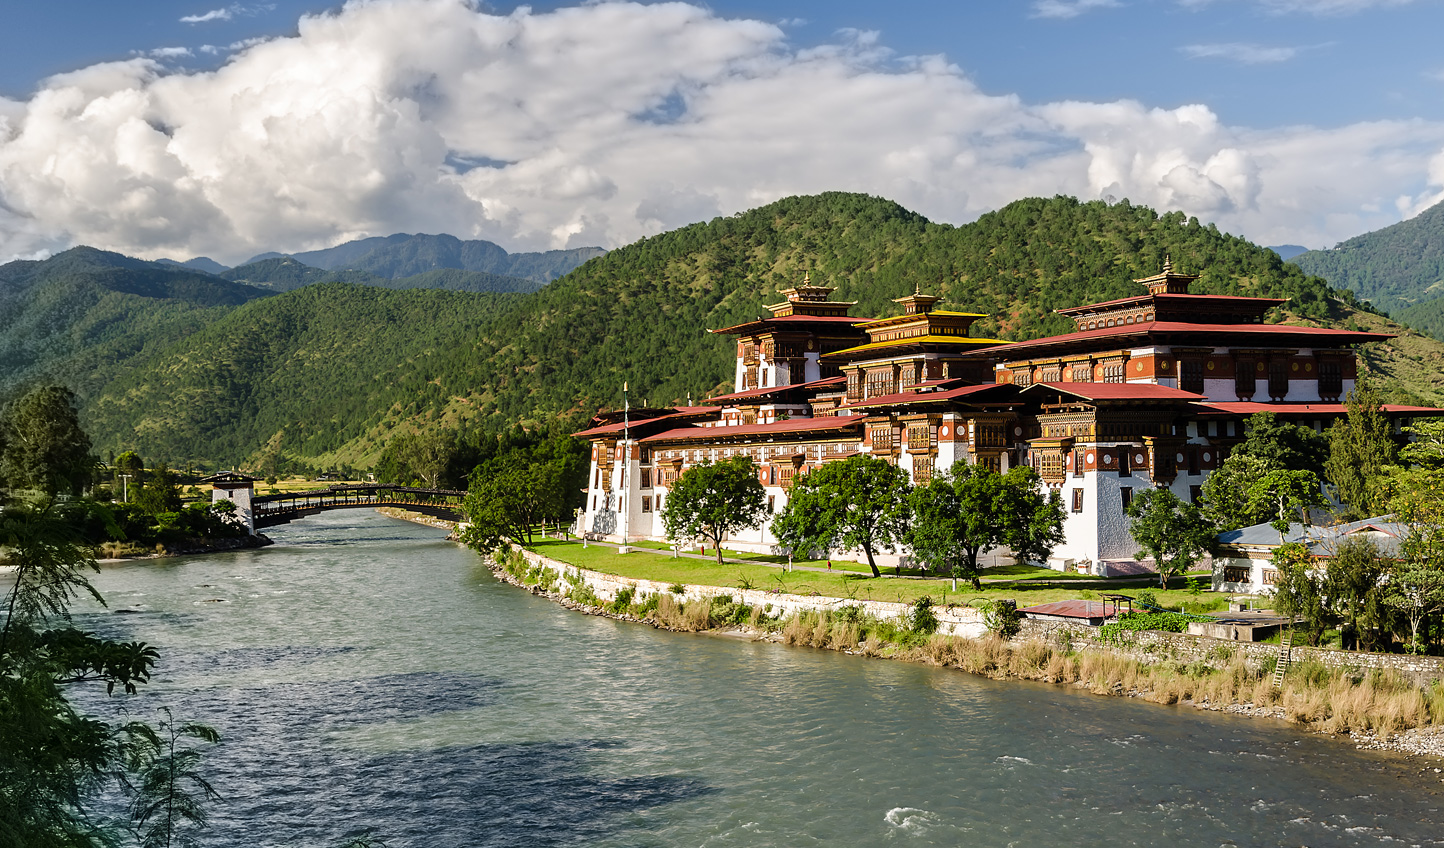 Raft down the Mo Chhu River for lunch overlooking Punakha Dzong